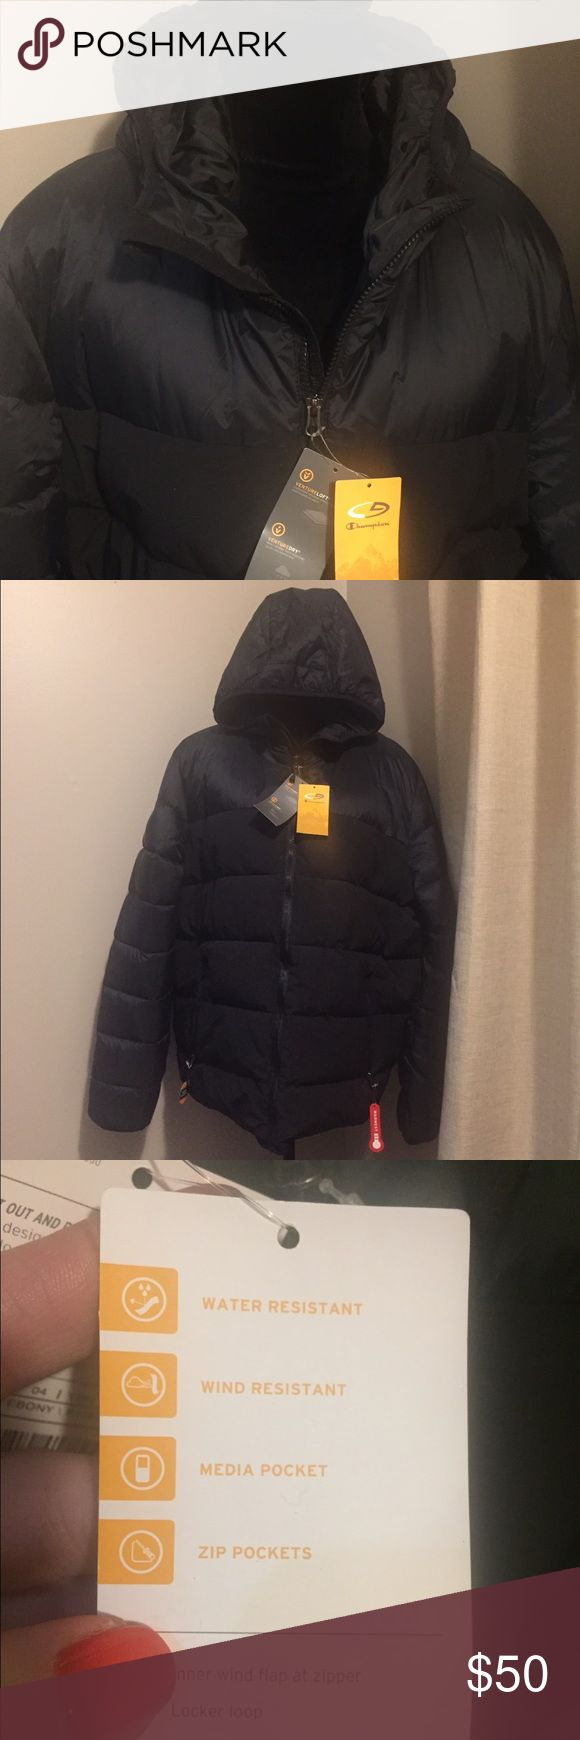 Brand New Men's Puffer Coat!! Love this for sleek looking Puffer Jacket!!  Brand New and Never Worn with tags.  This is a men's coat but I feel like it is unisex and can be worn by women too. Champion Jackets & Coats Puffers